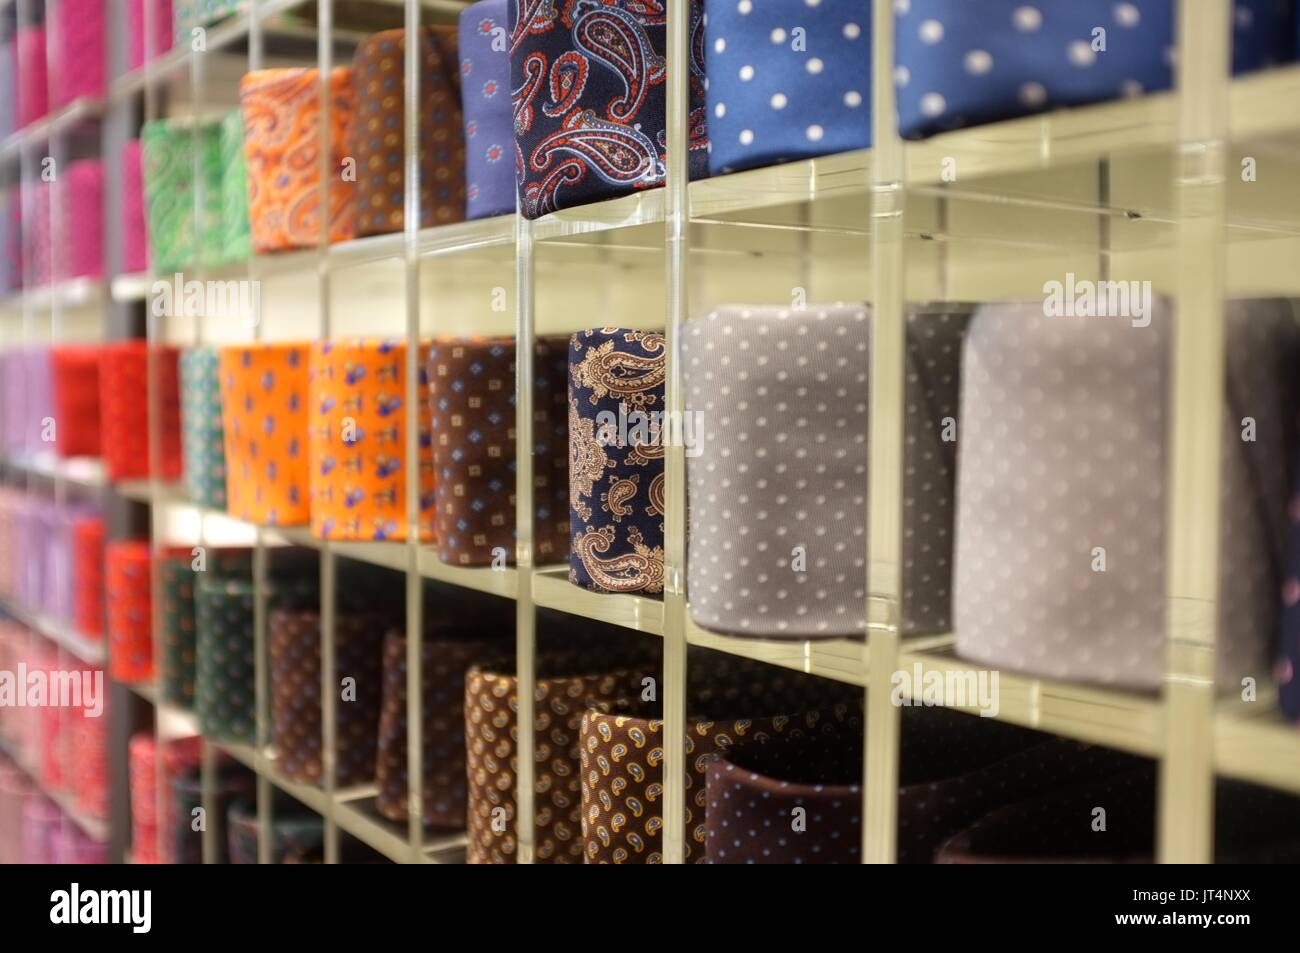 Italian ties at a shop in Galleria Vittorio Emanuele II, Milan, Lombardy, Italy, July 2017 Stock Photo